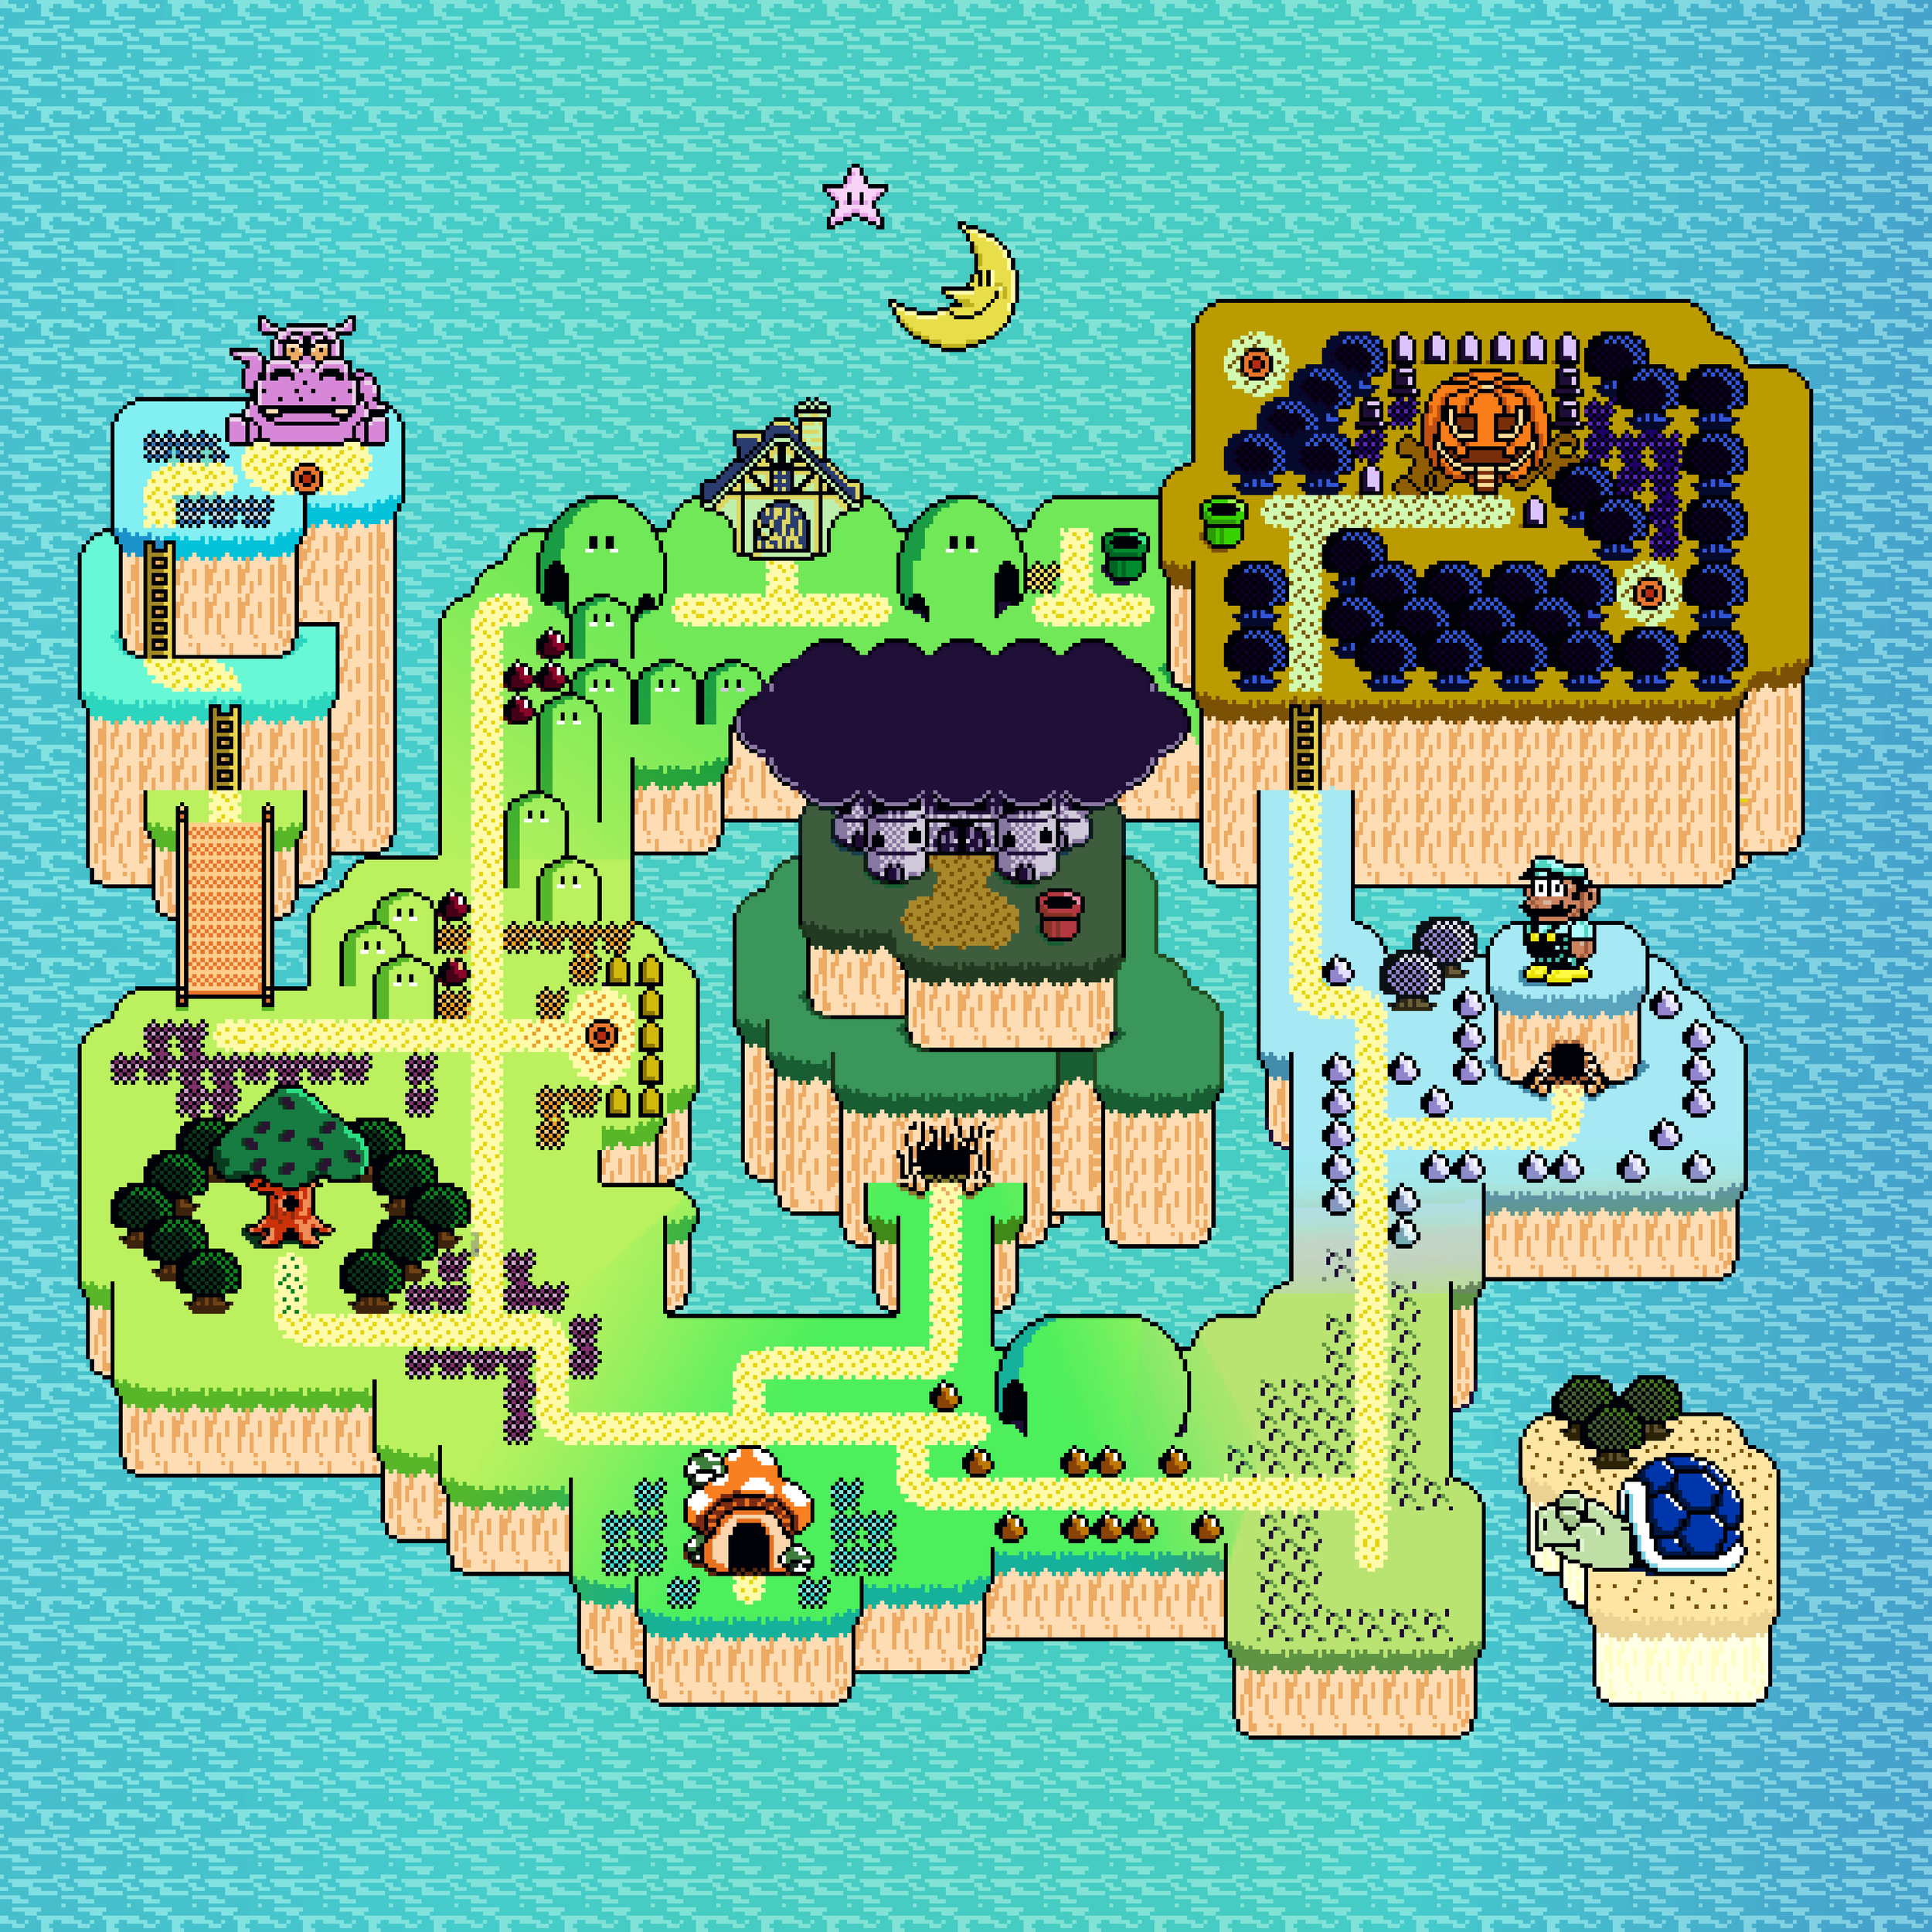 mario-land-2-world-map-colored.png